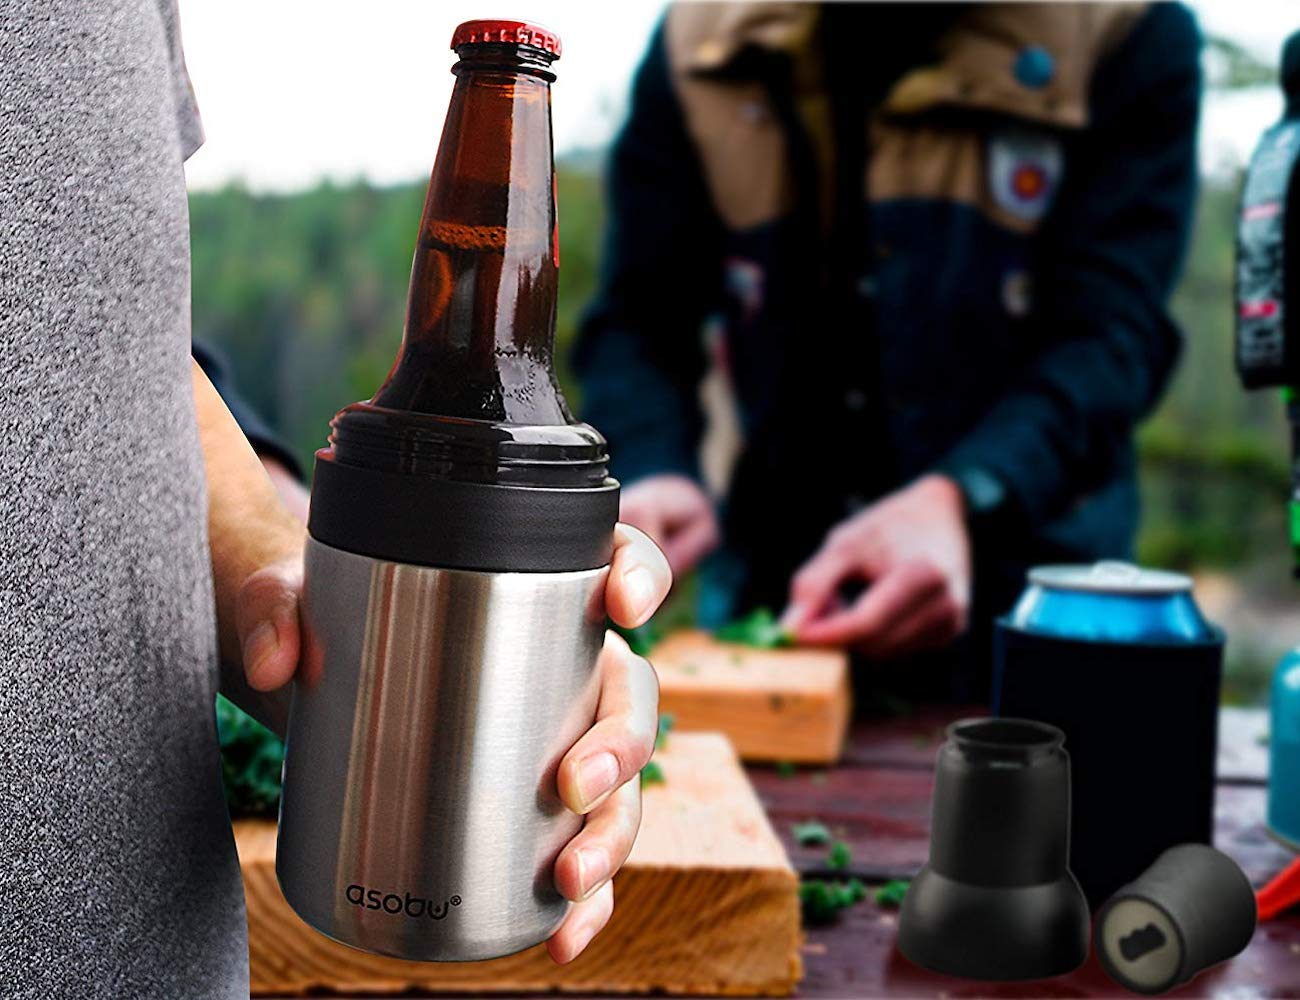 Asobu Double Wall Insulated Beer Bottle Chilled and Cooler for All the Avid Beer Lovers